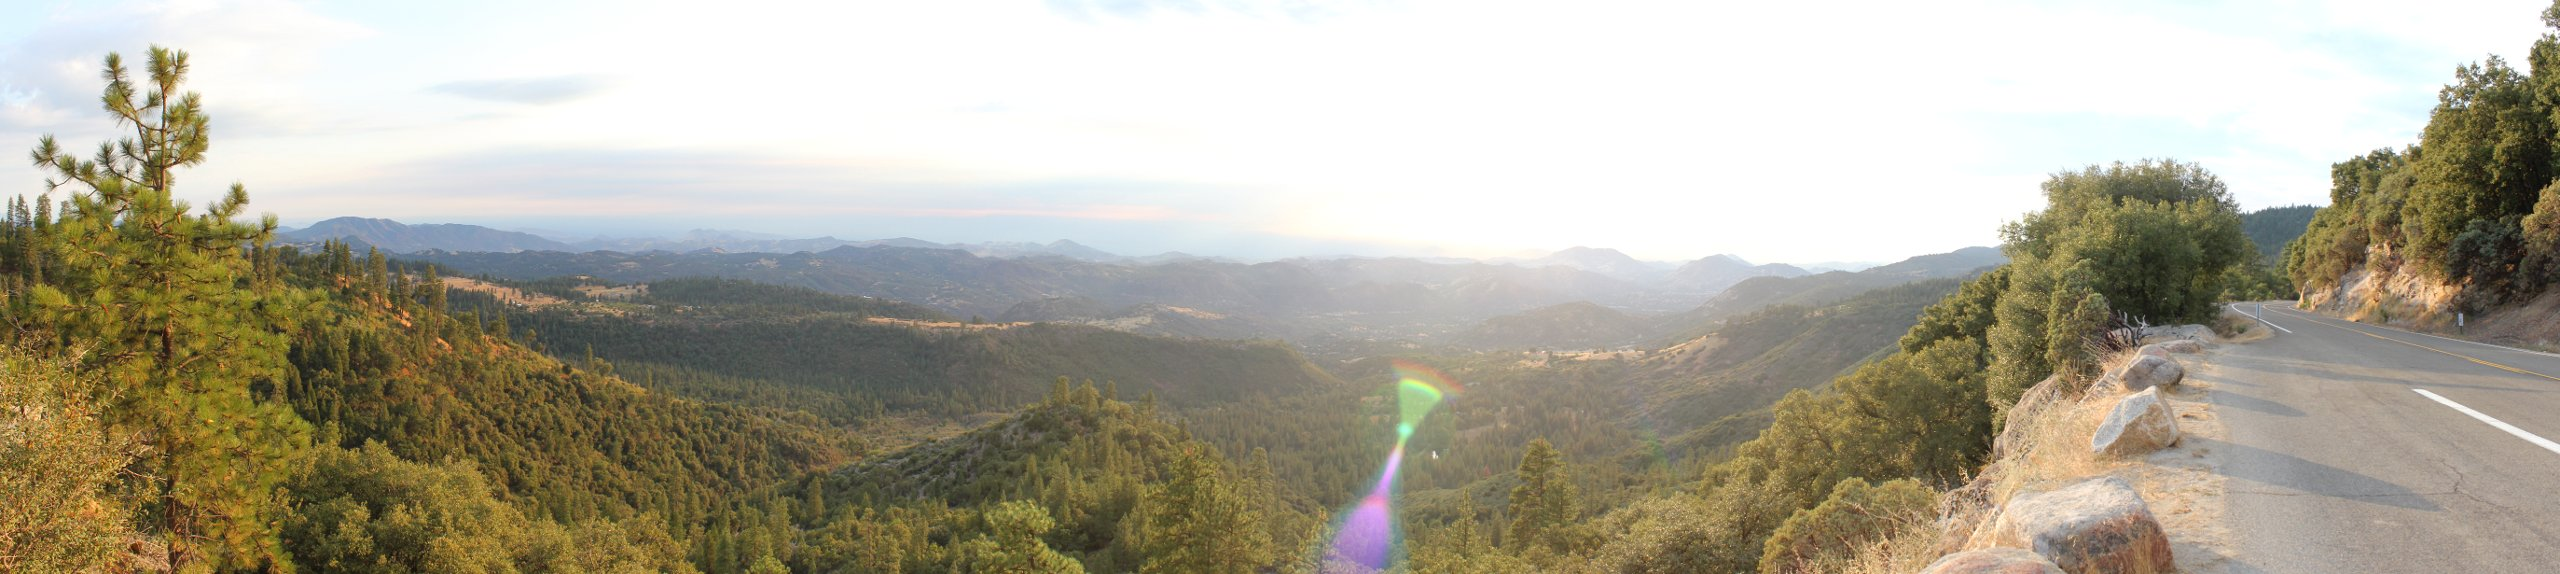 Panoramic View near the Generals Highway near the Sequoia